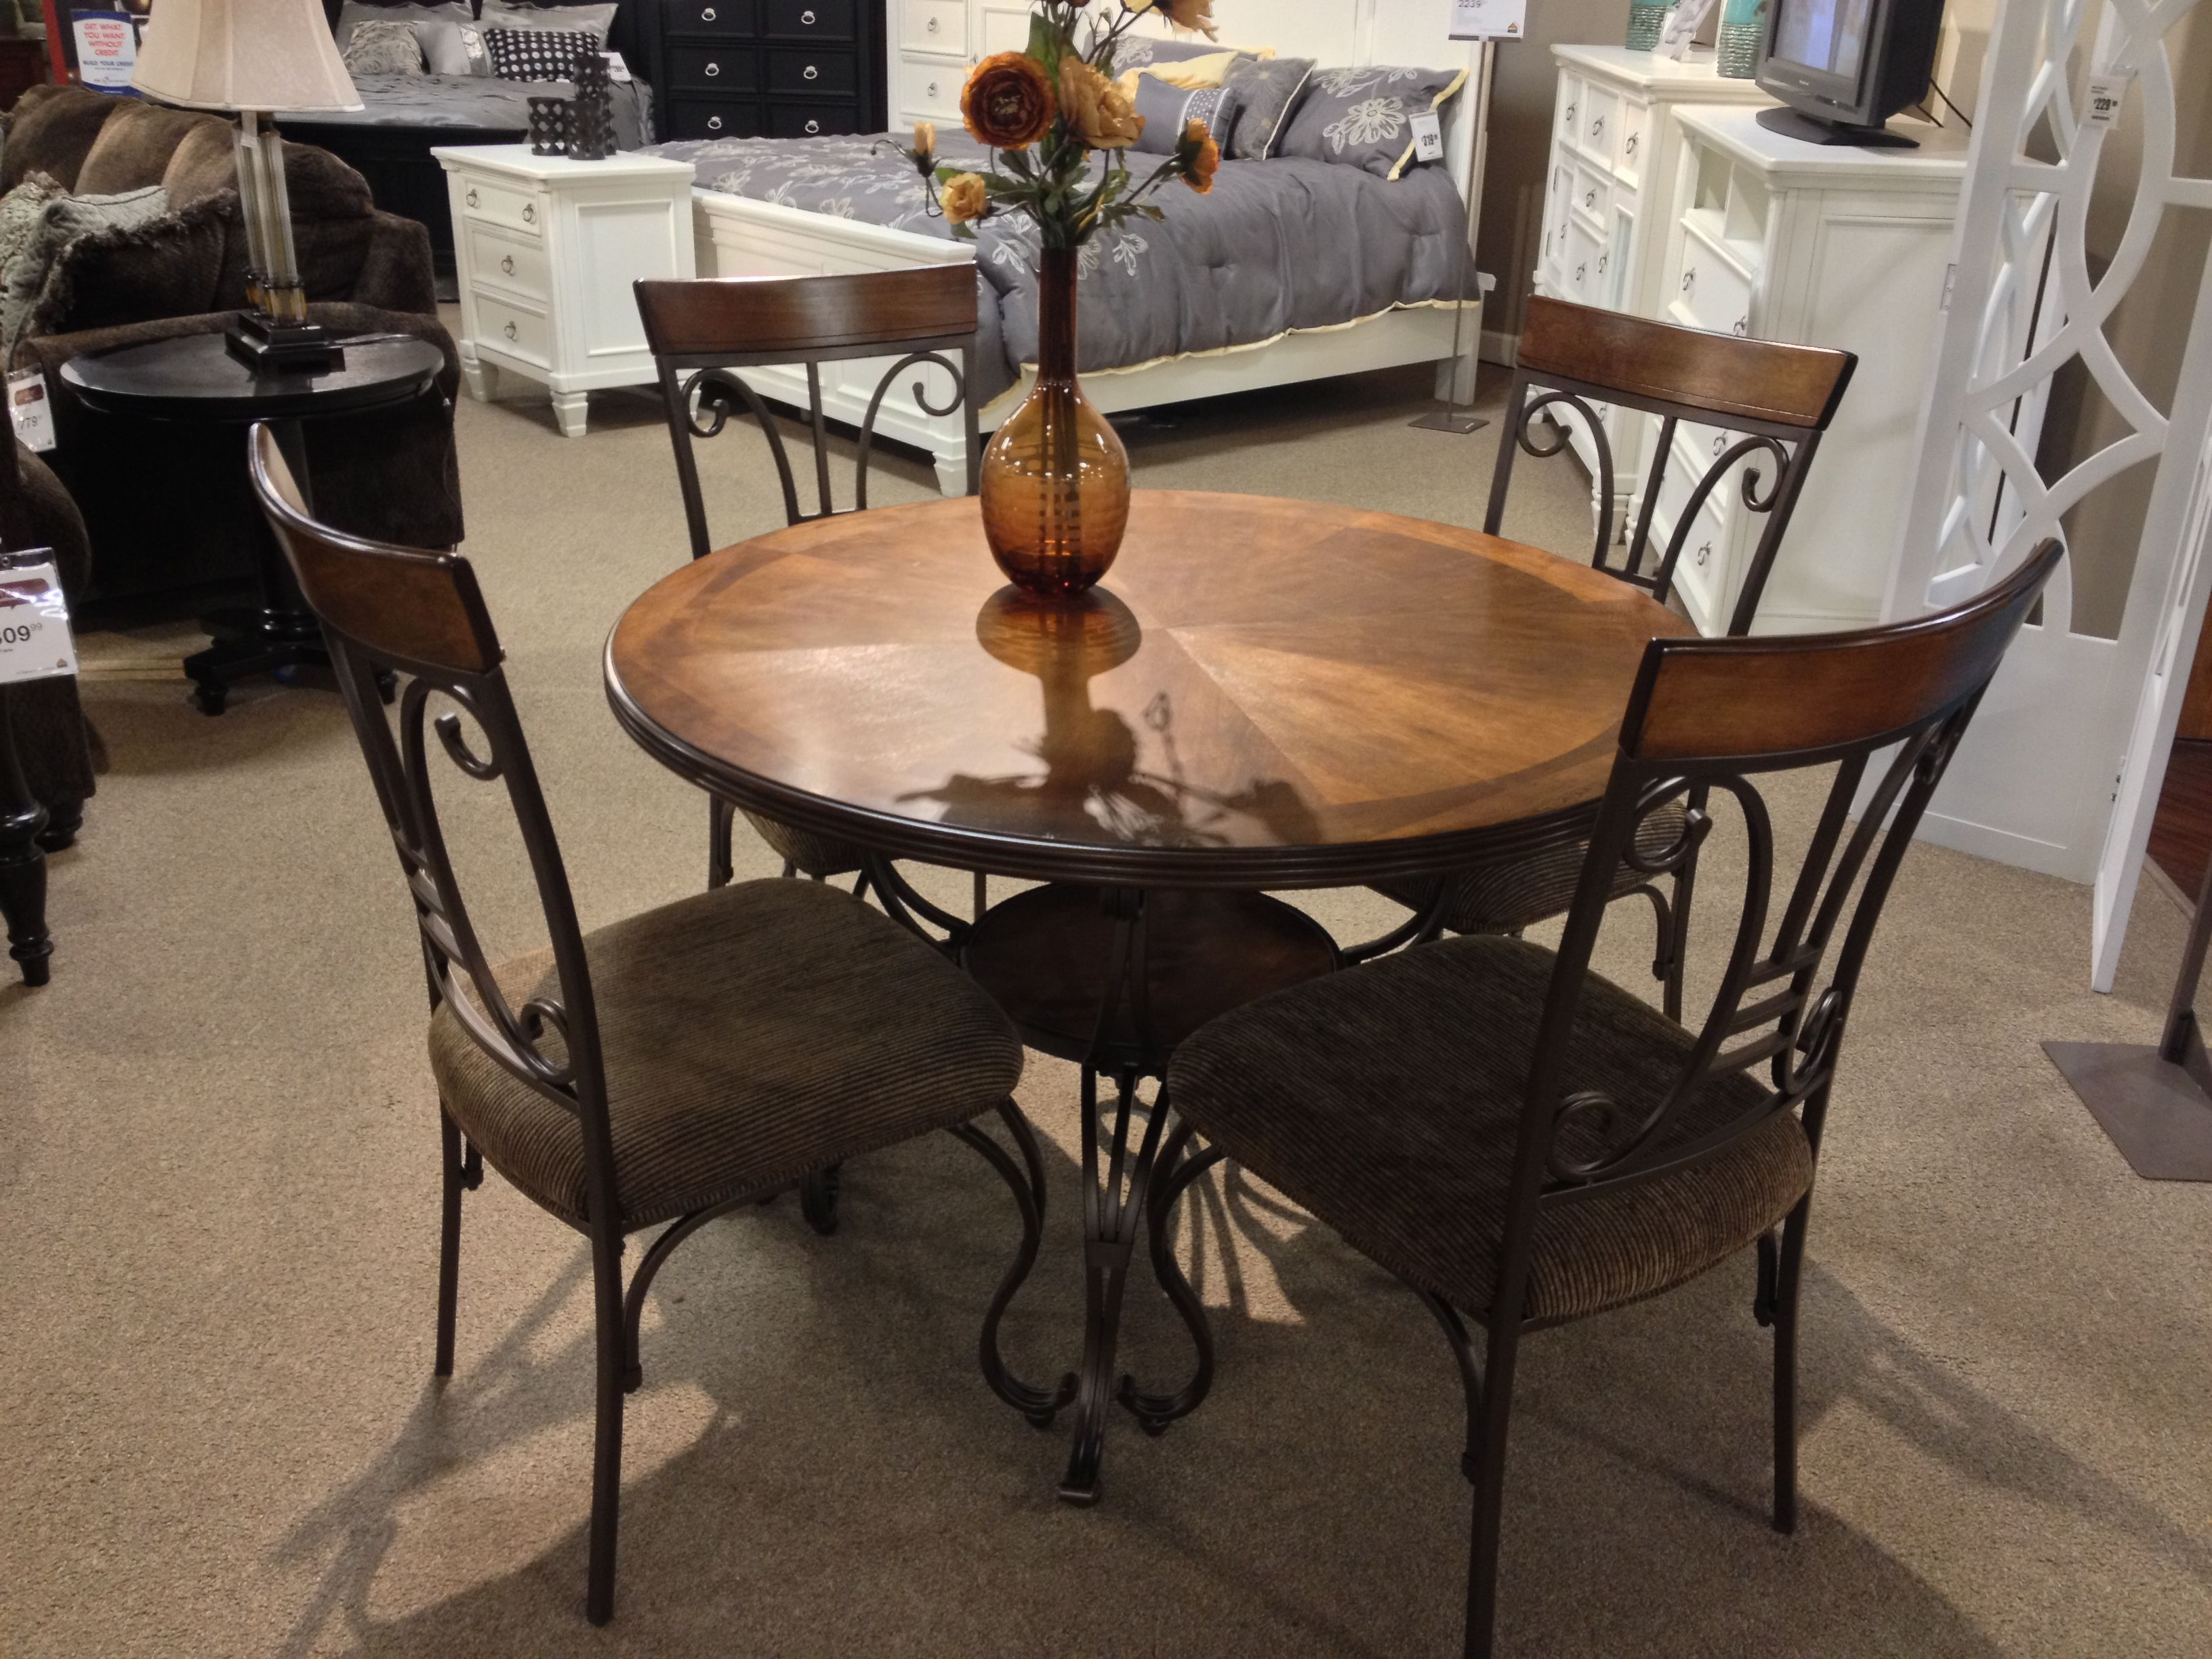 Plentywood 5 Piece Dining Room Set At Ashley Furniture In TriCities